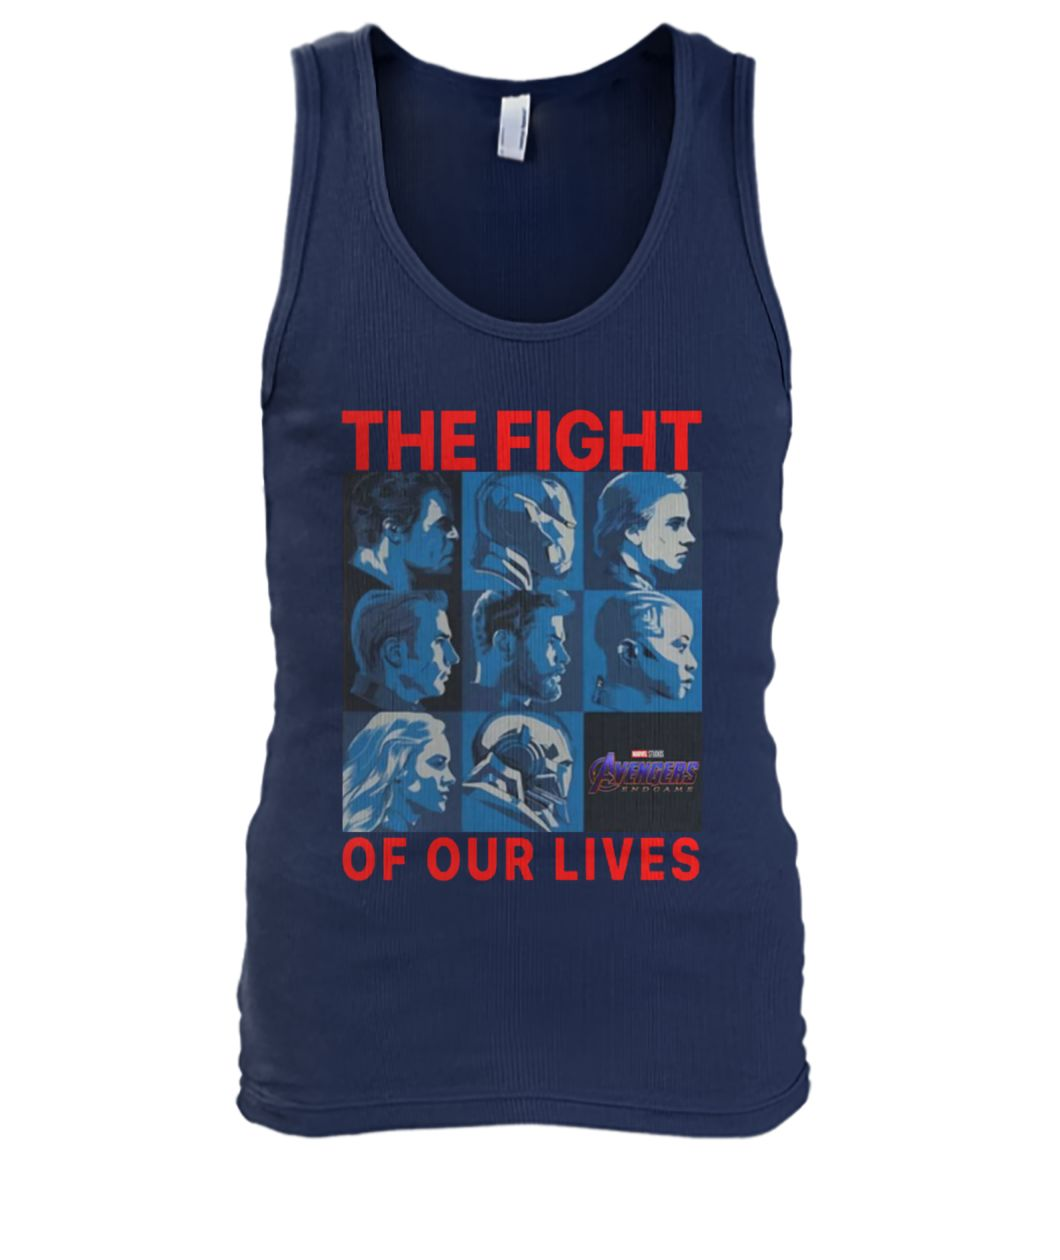 Avengers endgame the fight for our lives men's tank top